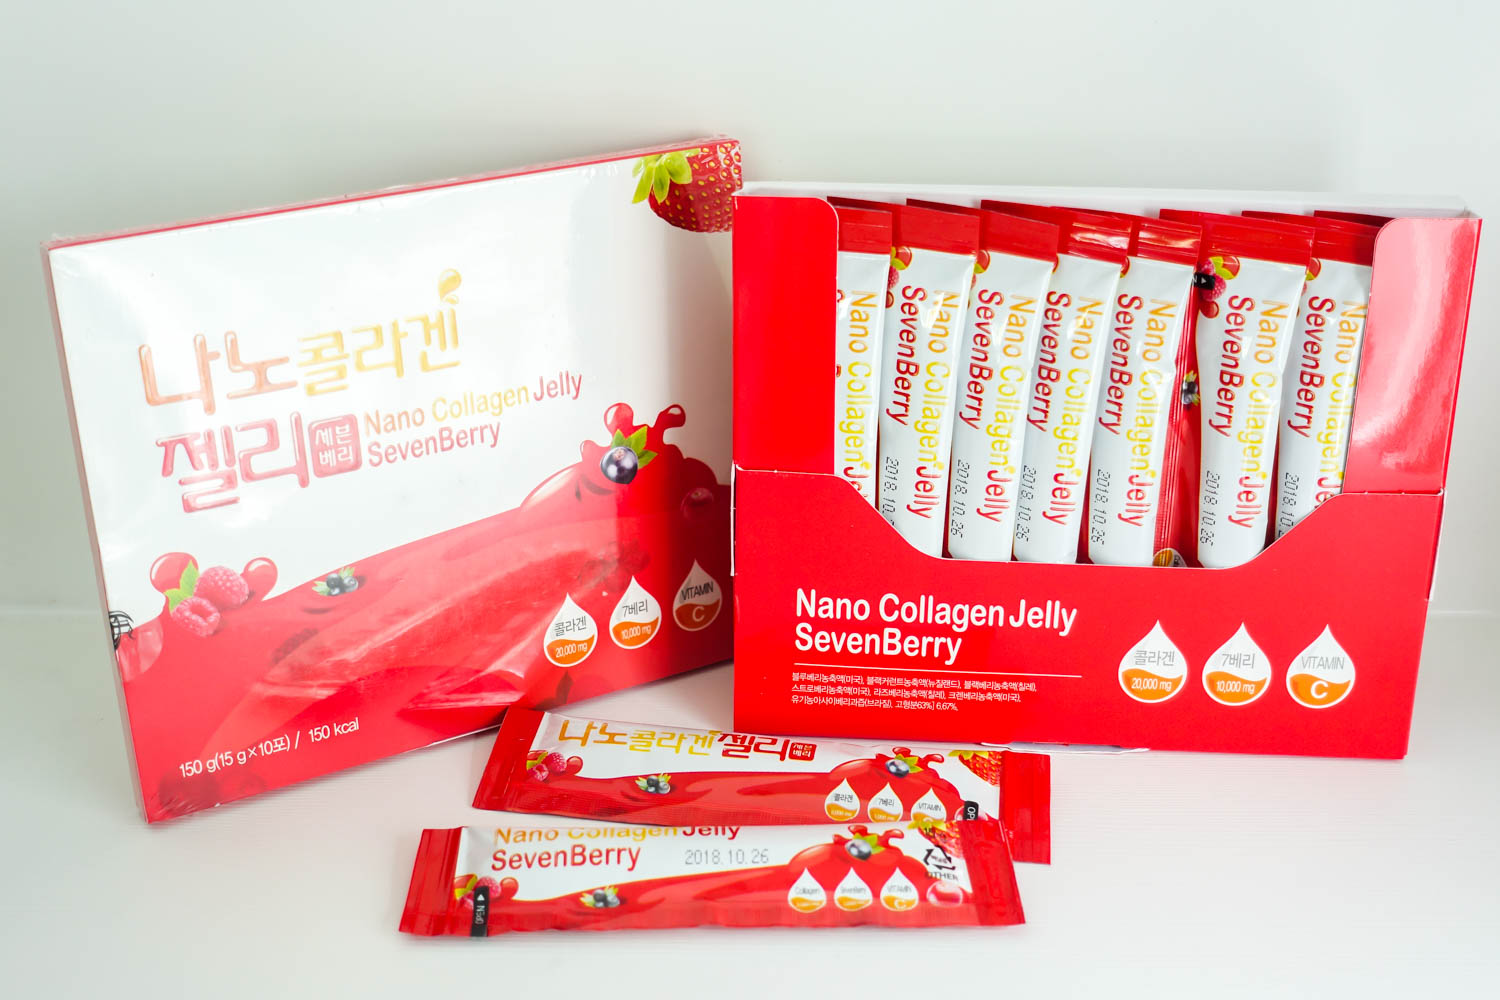 nano-collagen-jelly-sevenberry